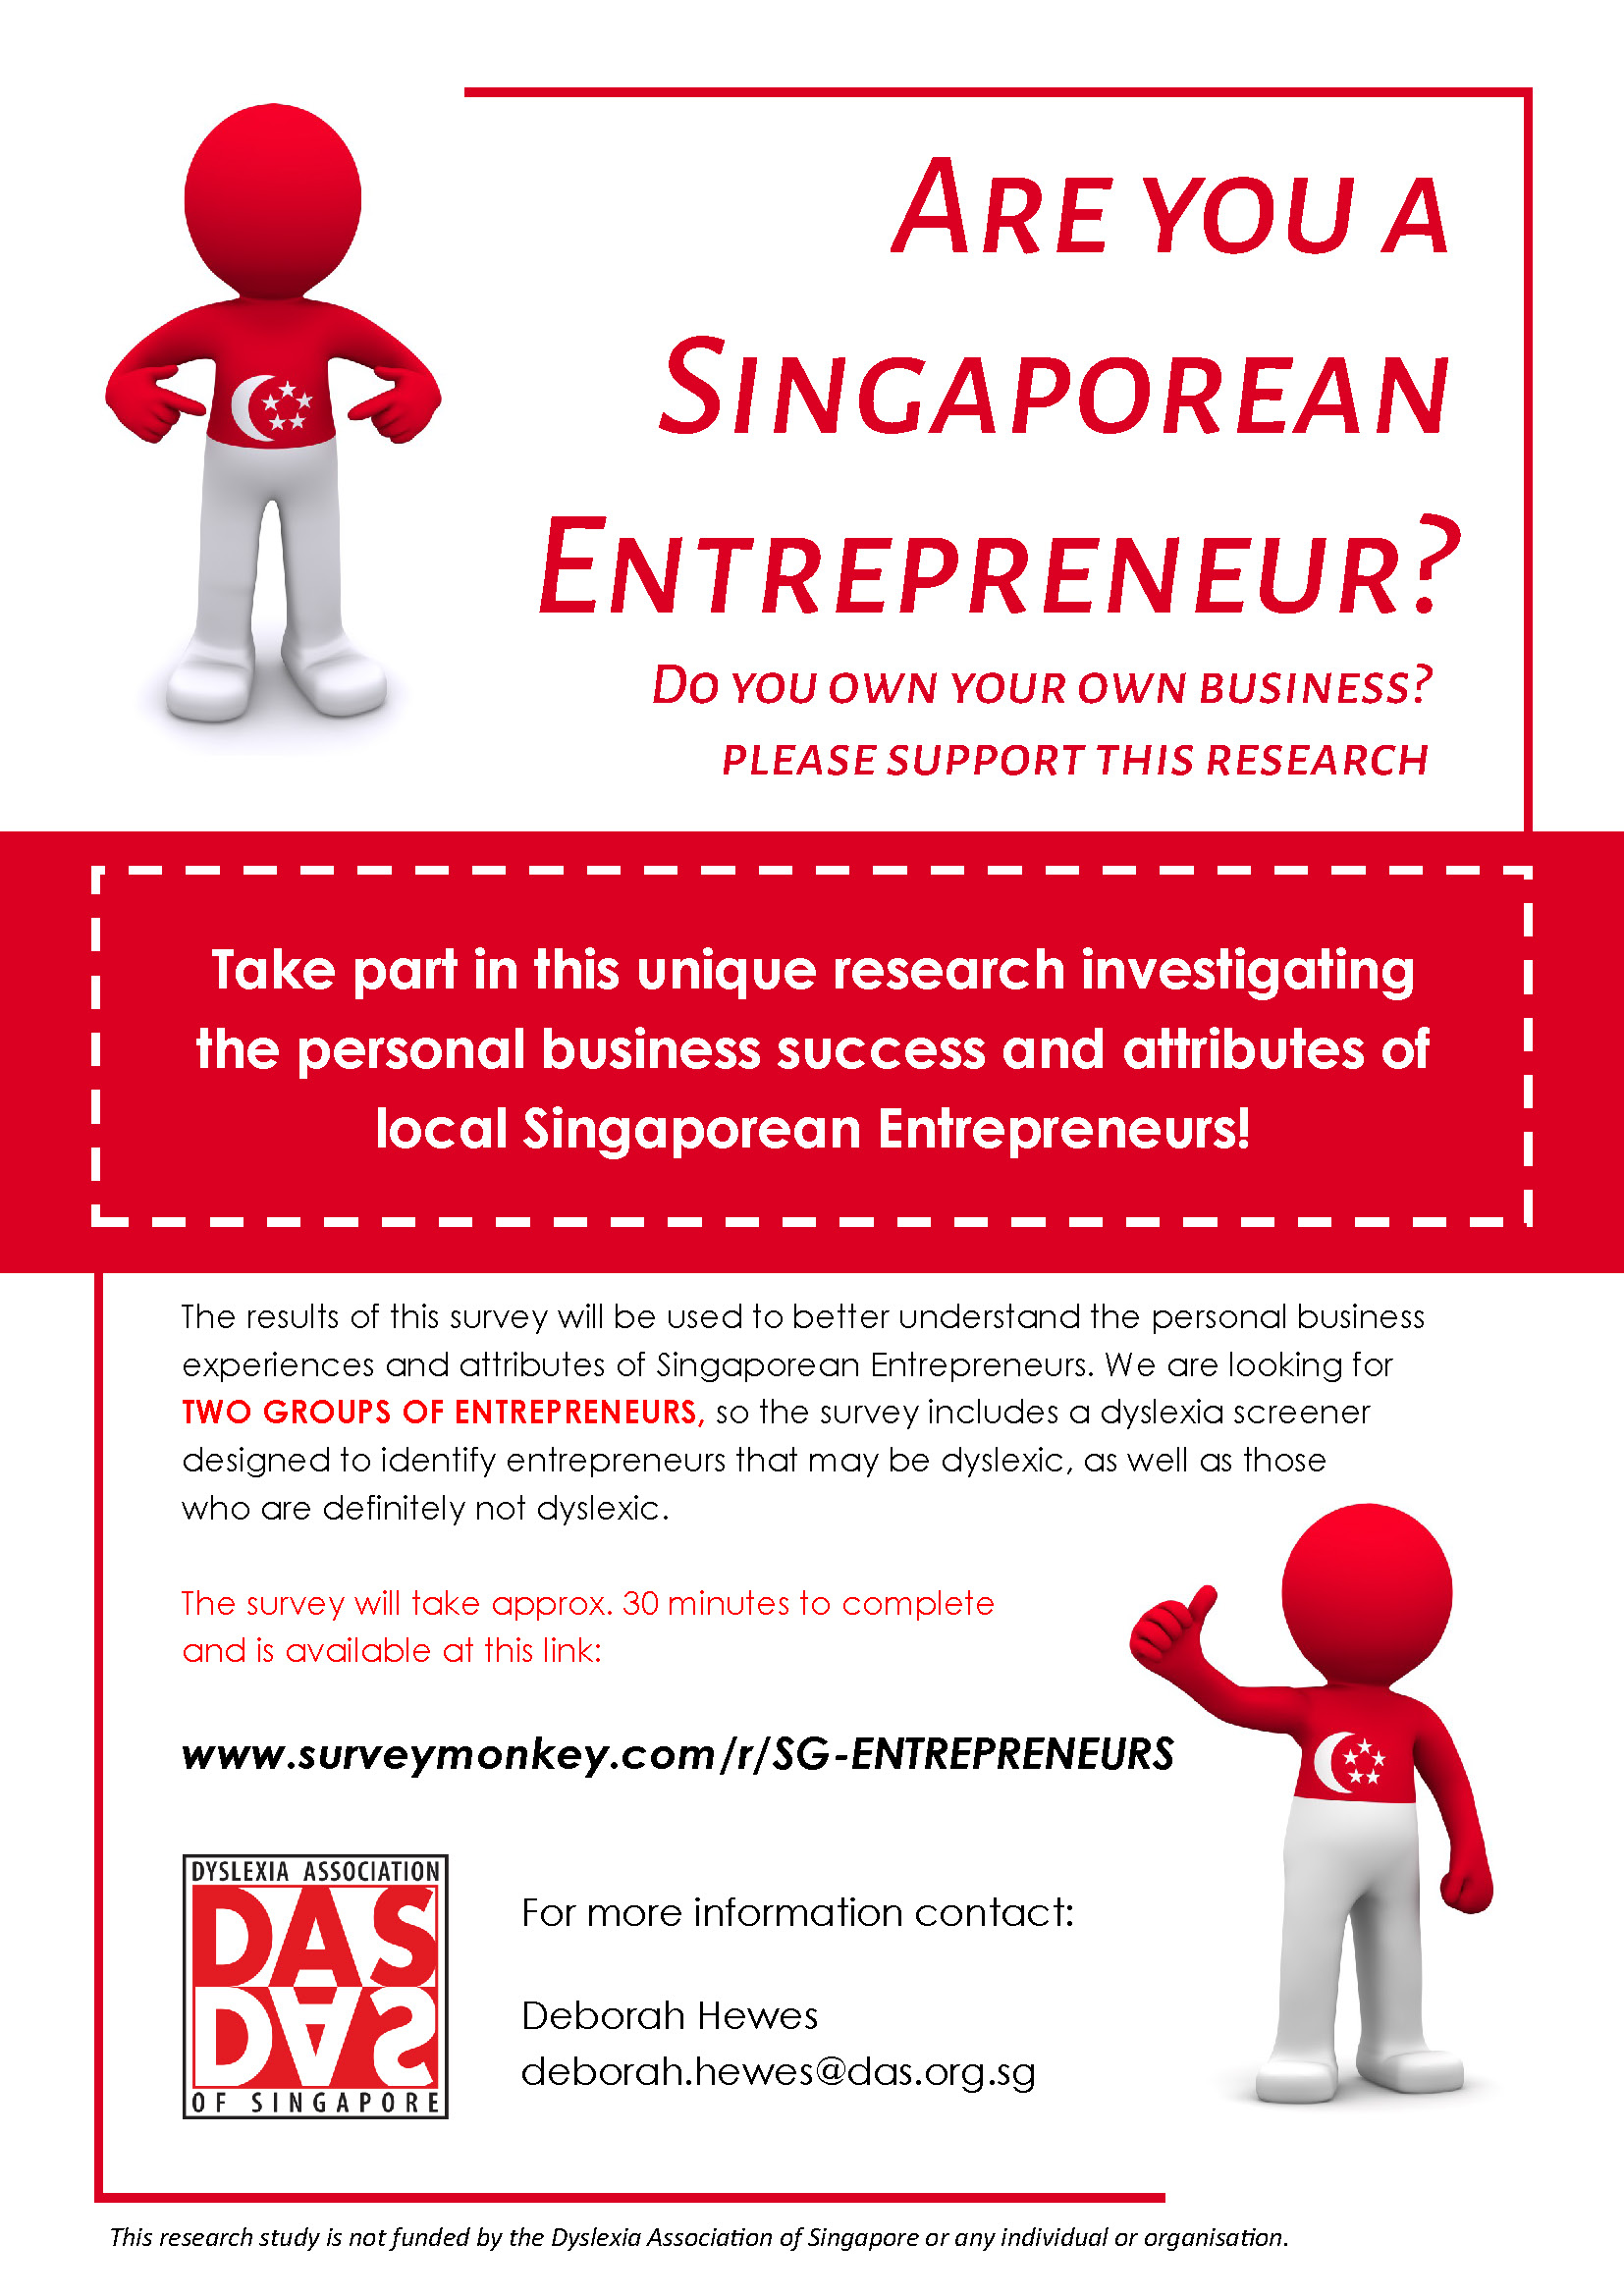 Singapore Entrepreneur Research Flyer